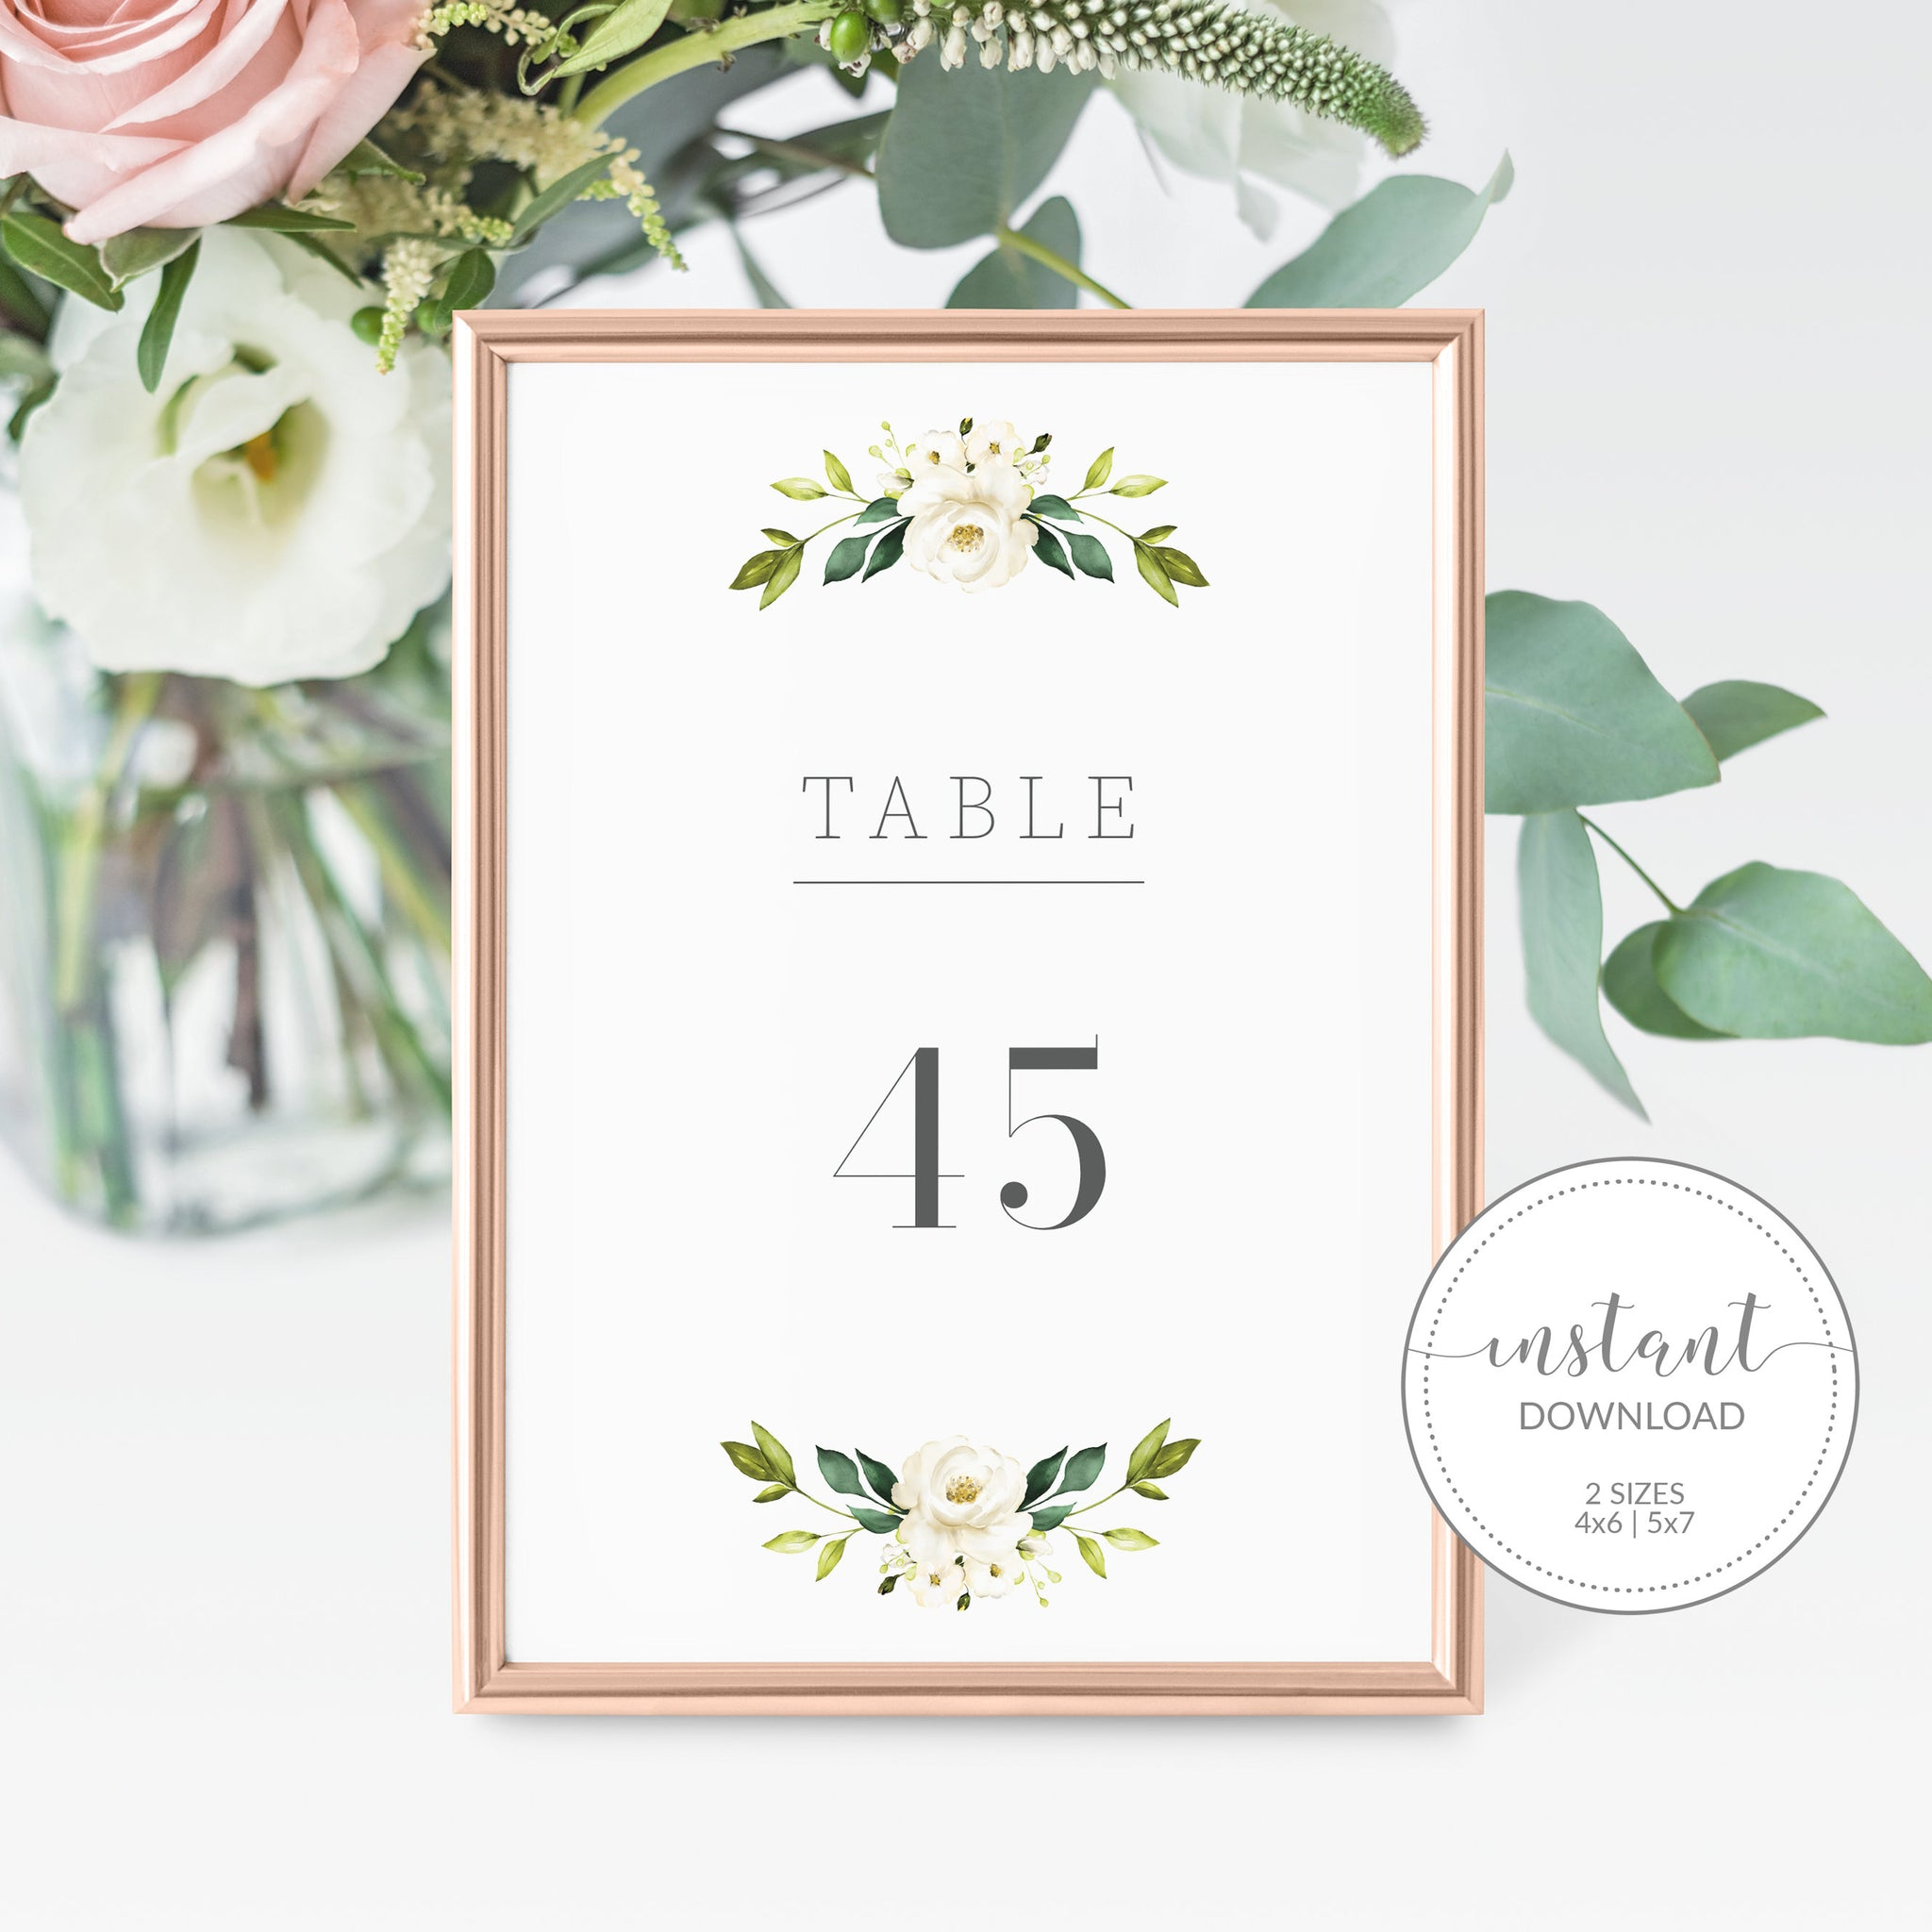 White Floral Greenery Wedding Table Numbers 1-50, Table Number Cards Wedding, Table Numbers 4x6 and 5x7, Printable INSTANT DOWNLOAD - WRG100 - @PlumPolkaDot